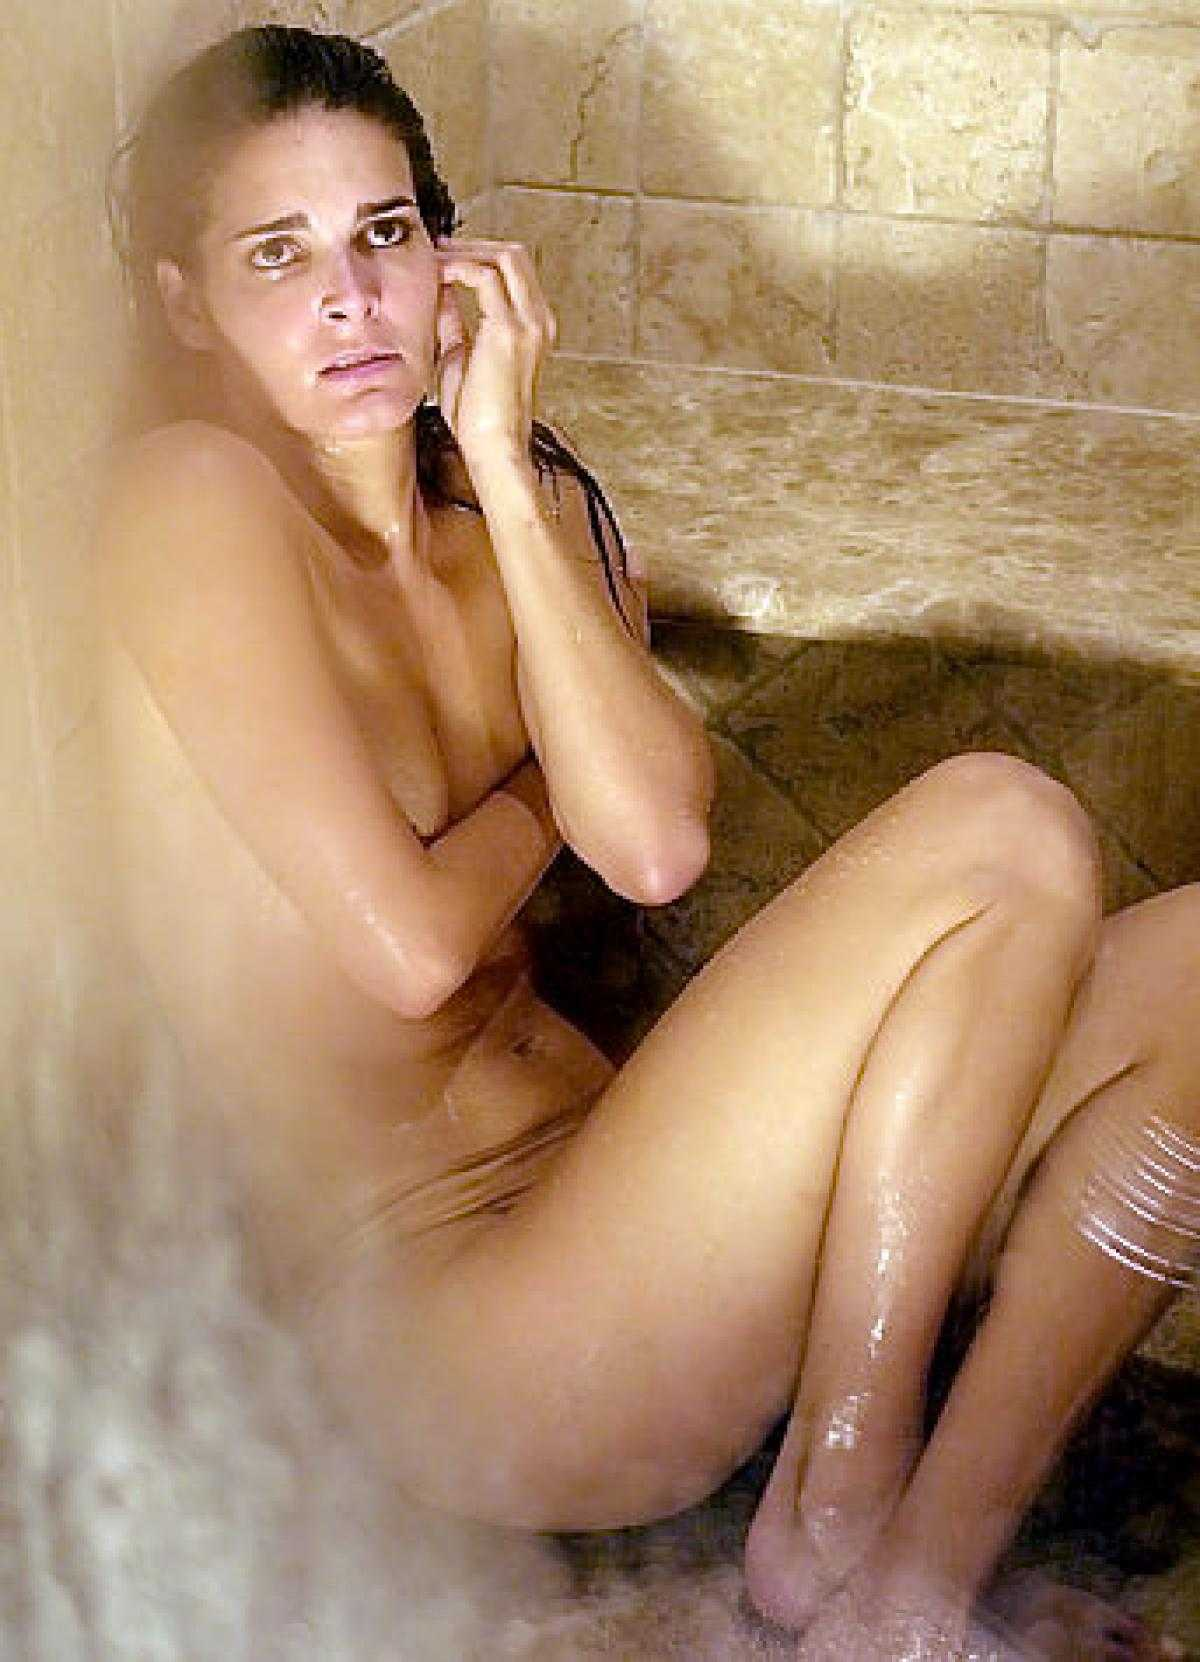 Angie Harmon Nuda 40 nude pictures of angie harmon which will leave you to awe